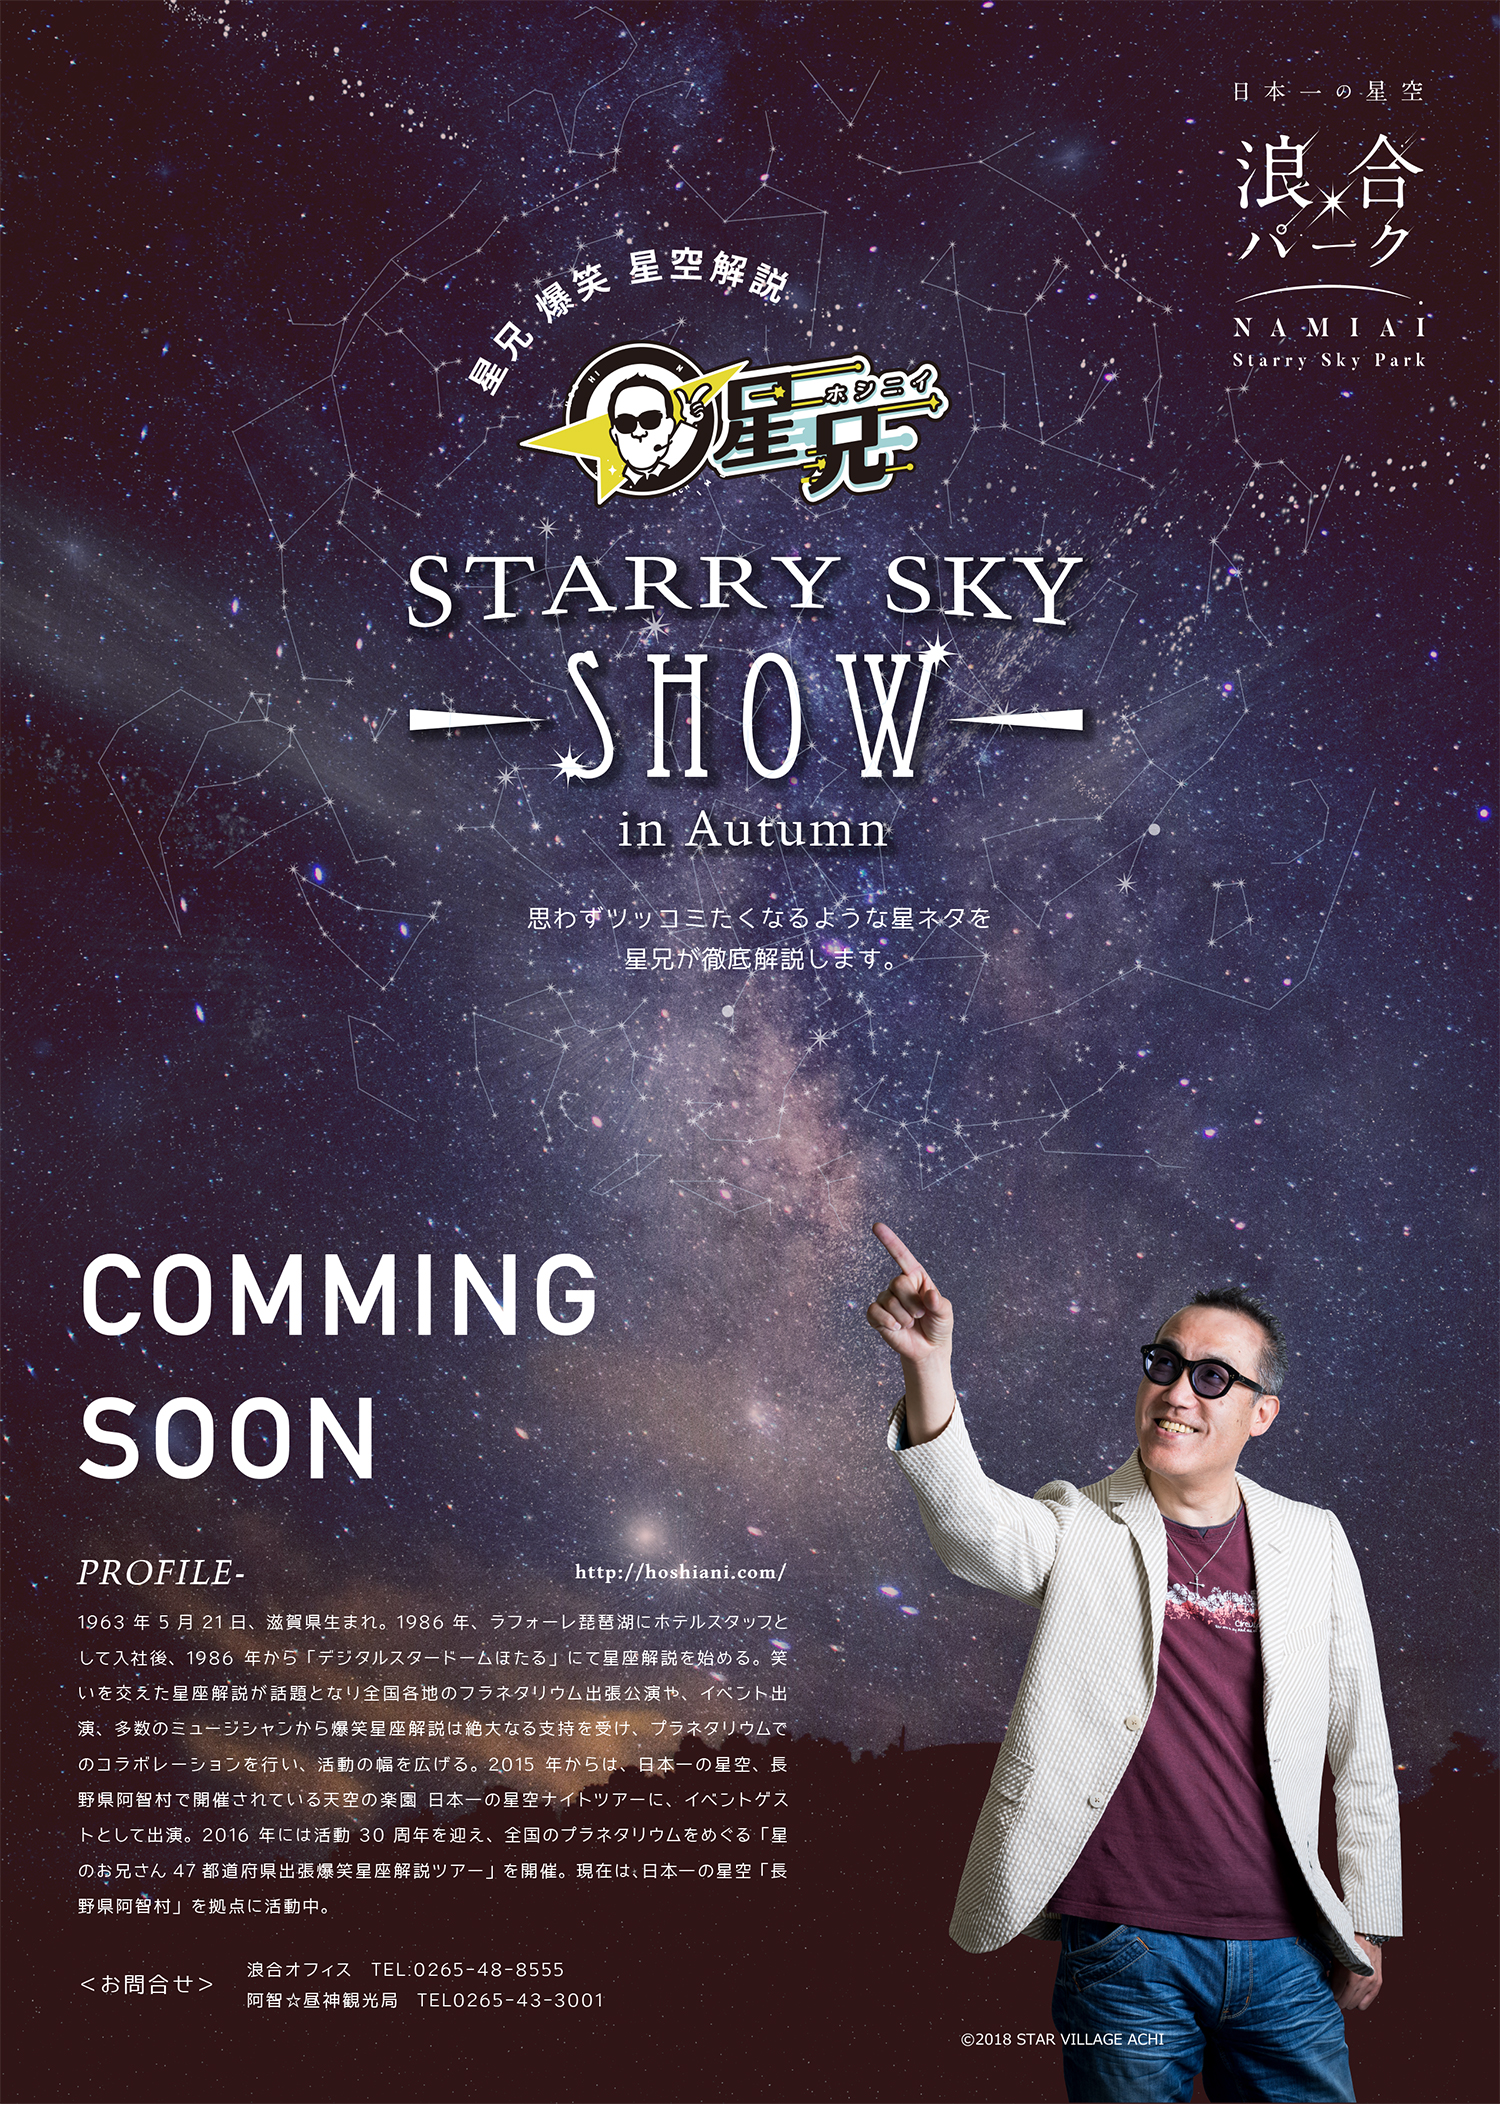 STARRY SKY SHOW in Autumn